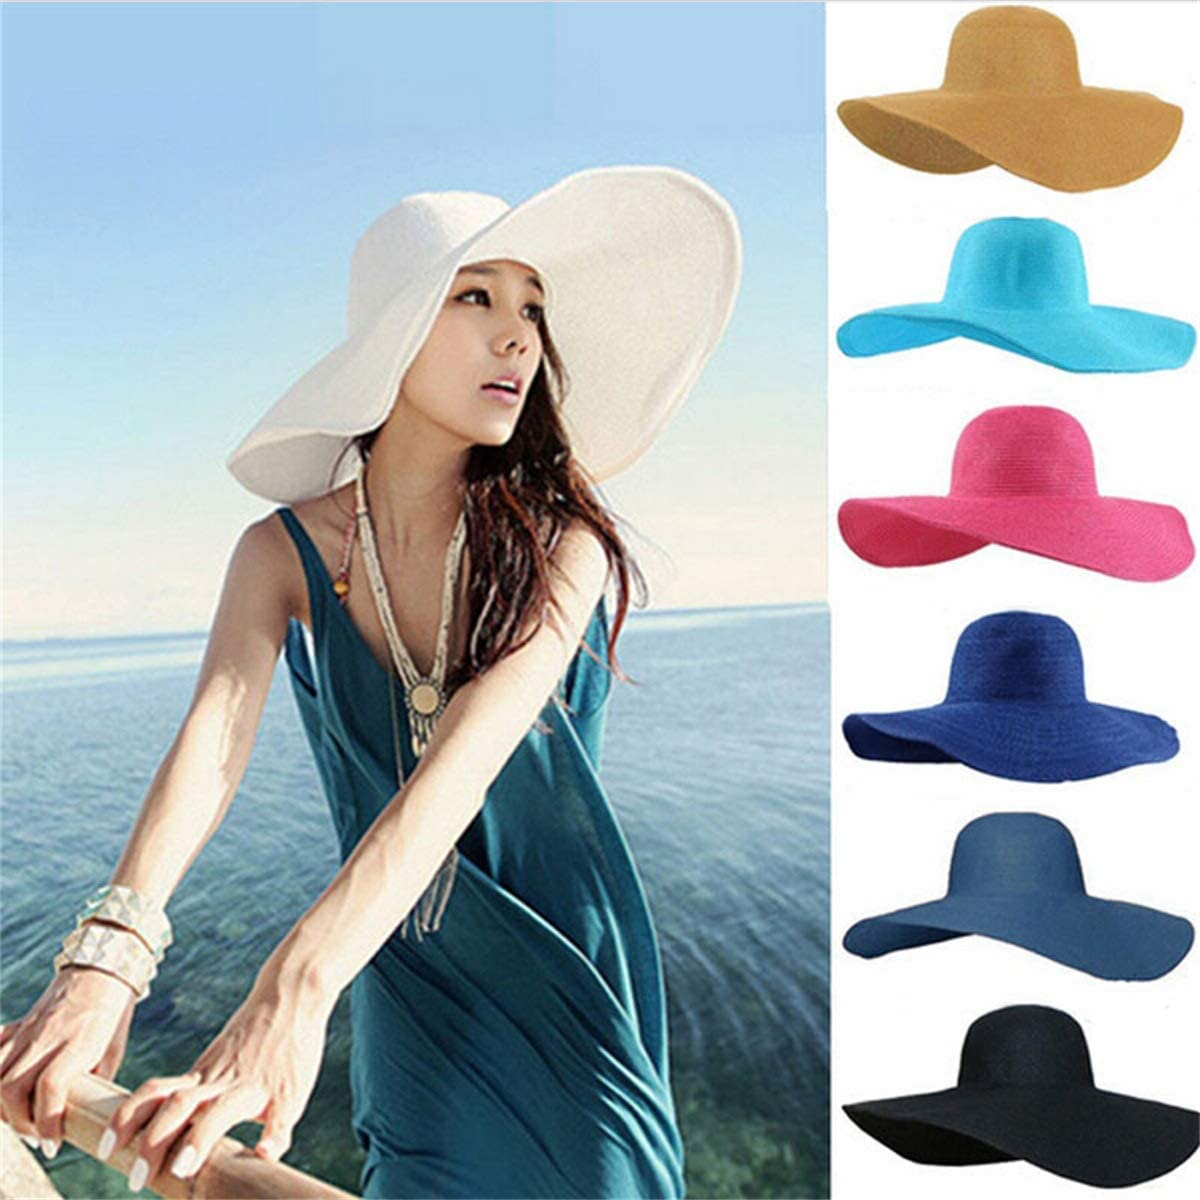 KSDJSA Women Foldable Wide Large Brim Floppy Beach Hat Sun Straw Hat Cap Sunhats